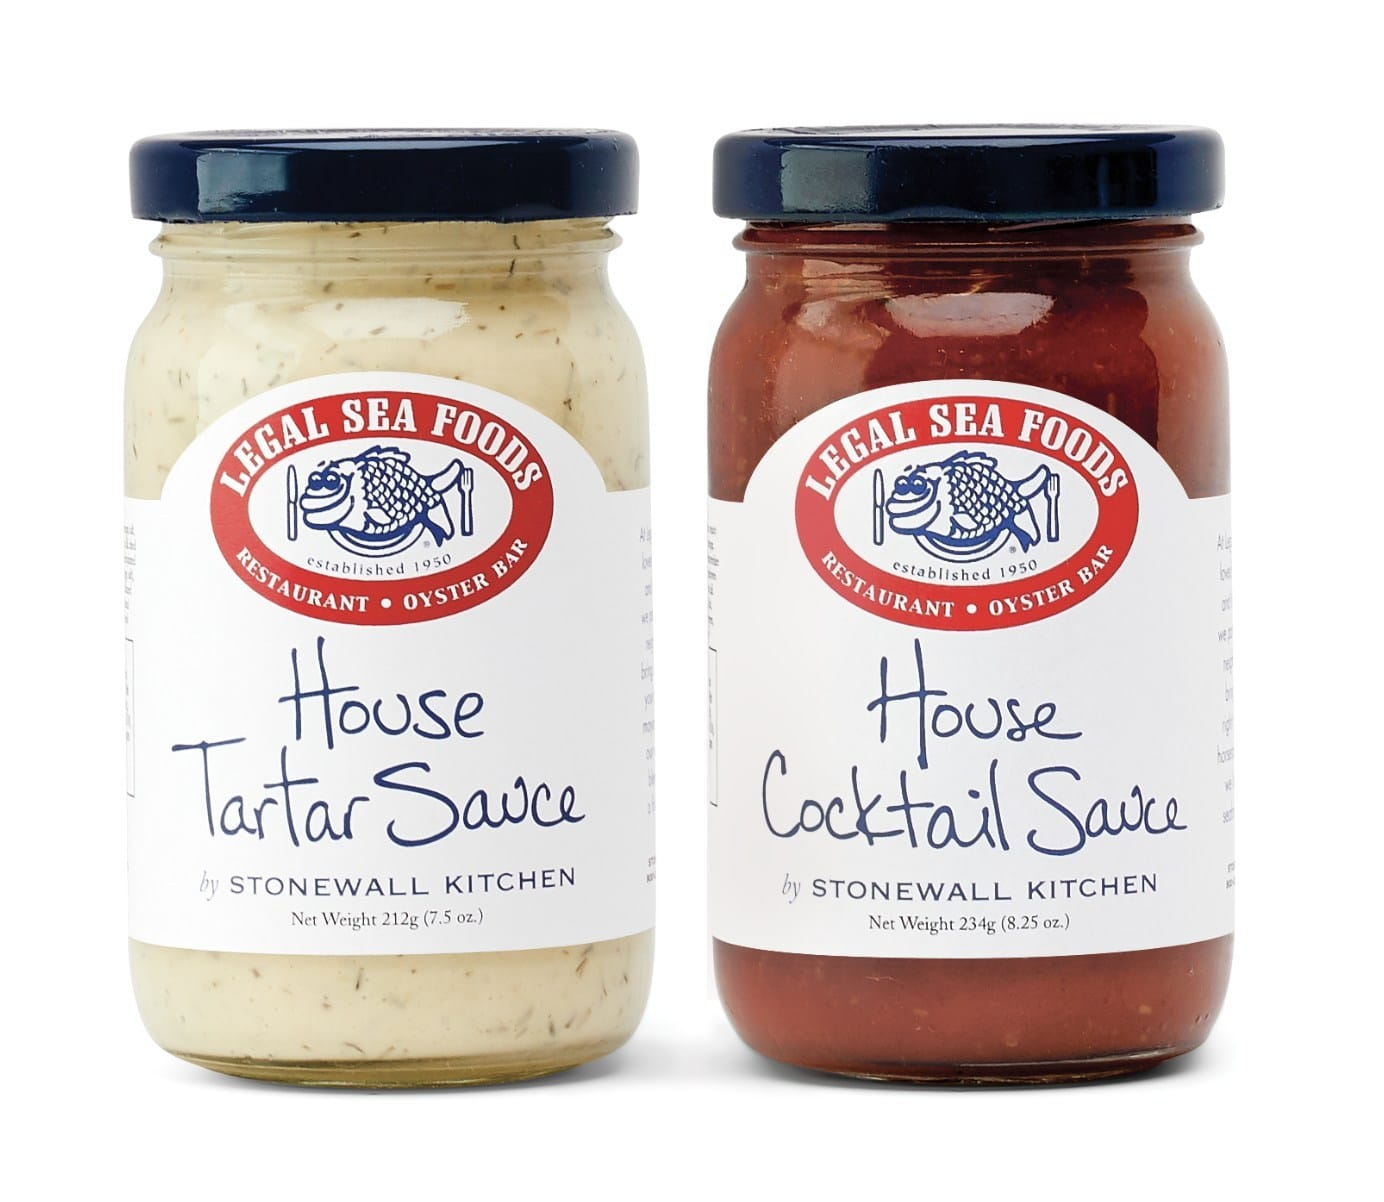 Stonewall Kitchen Signs Licensing Agreement With Legal Sea Foods